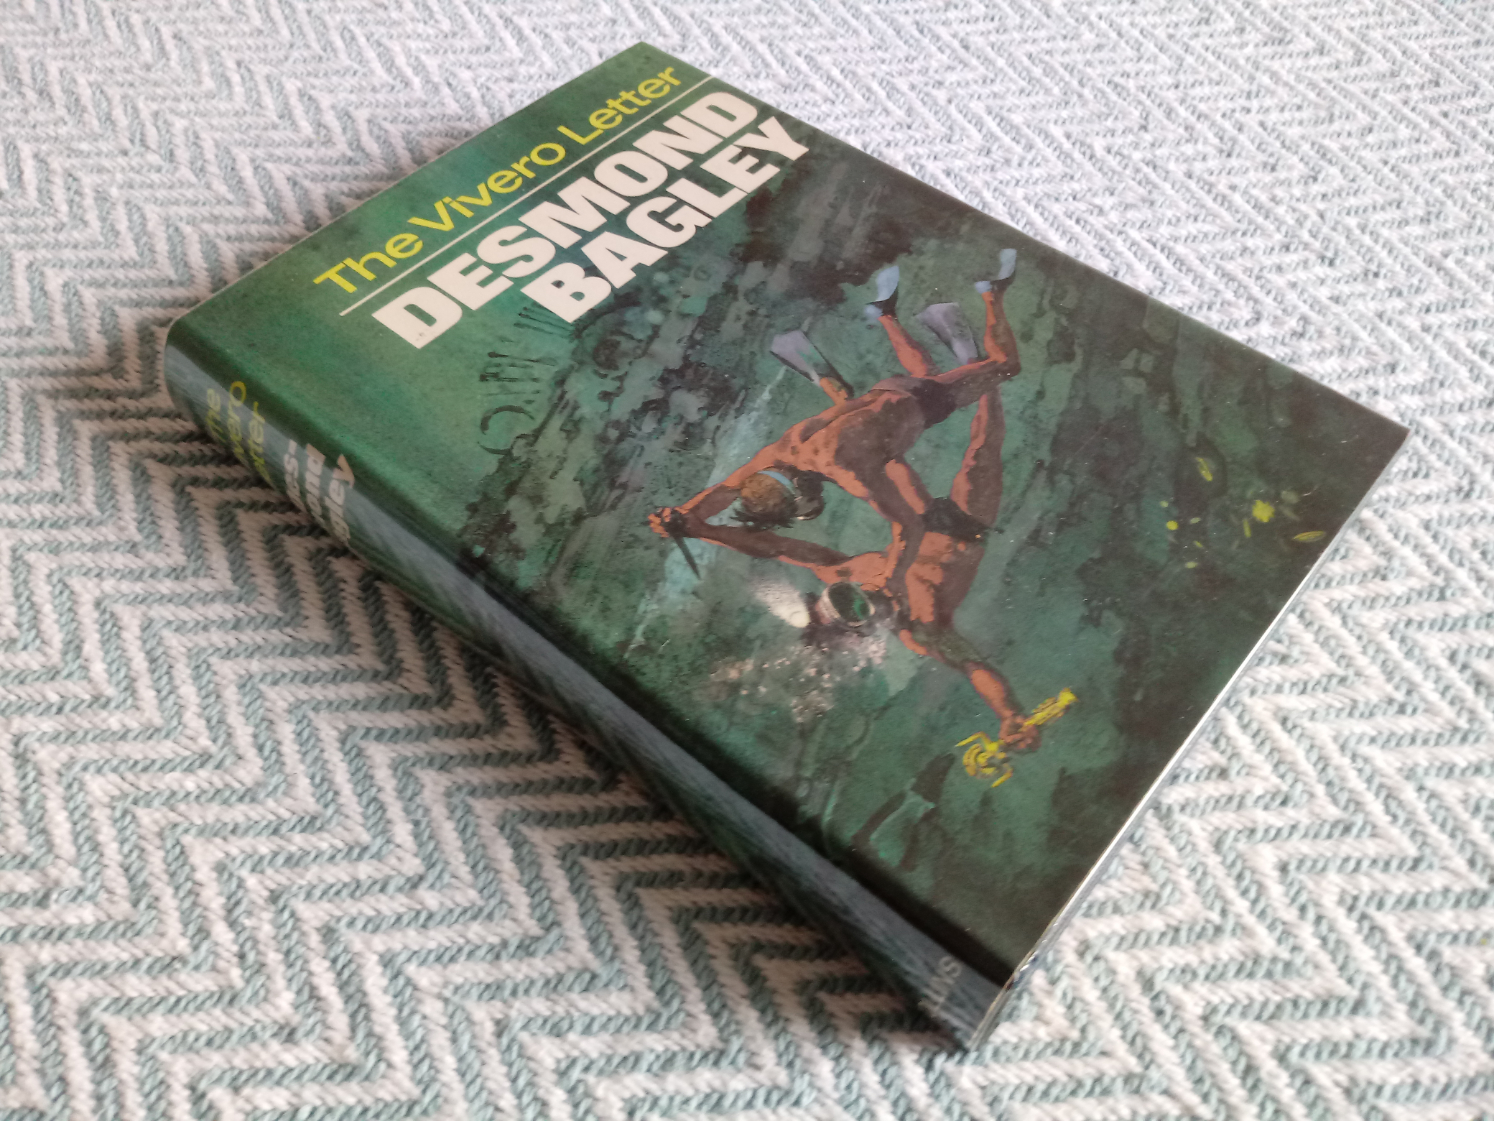 3 x Desmond Bagley hardback books published by Collins 1- Wyatt's Hurricane 287 pages 1966. In - Image 5 of 10